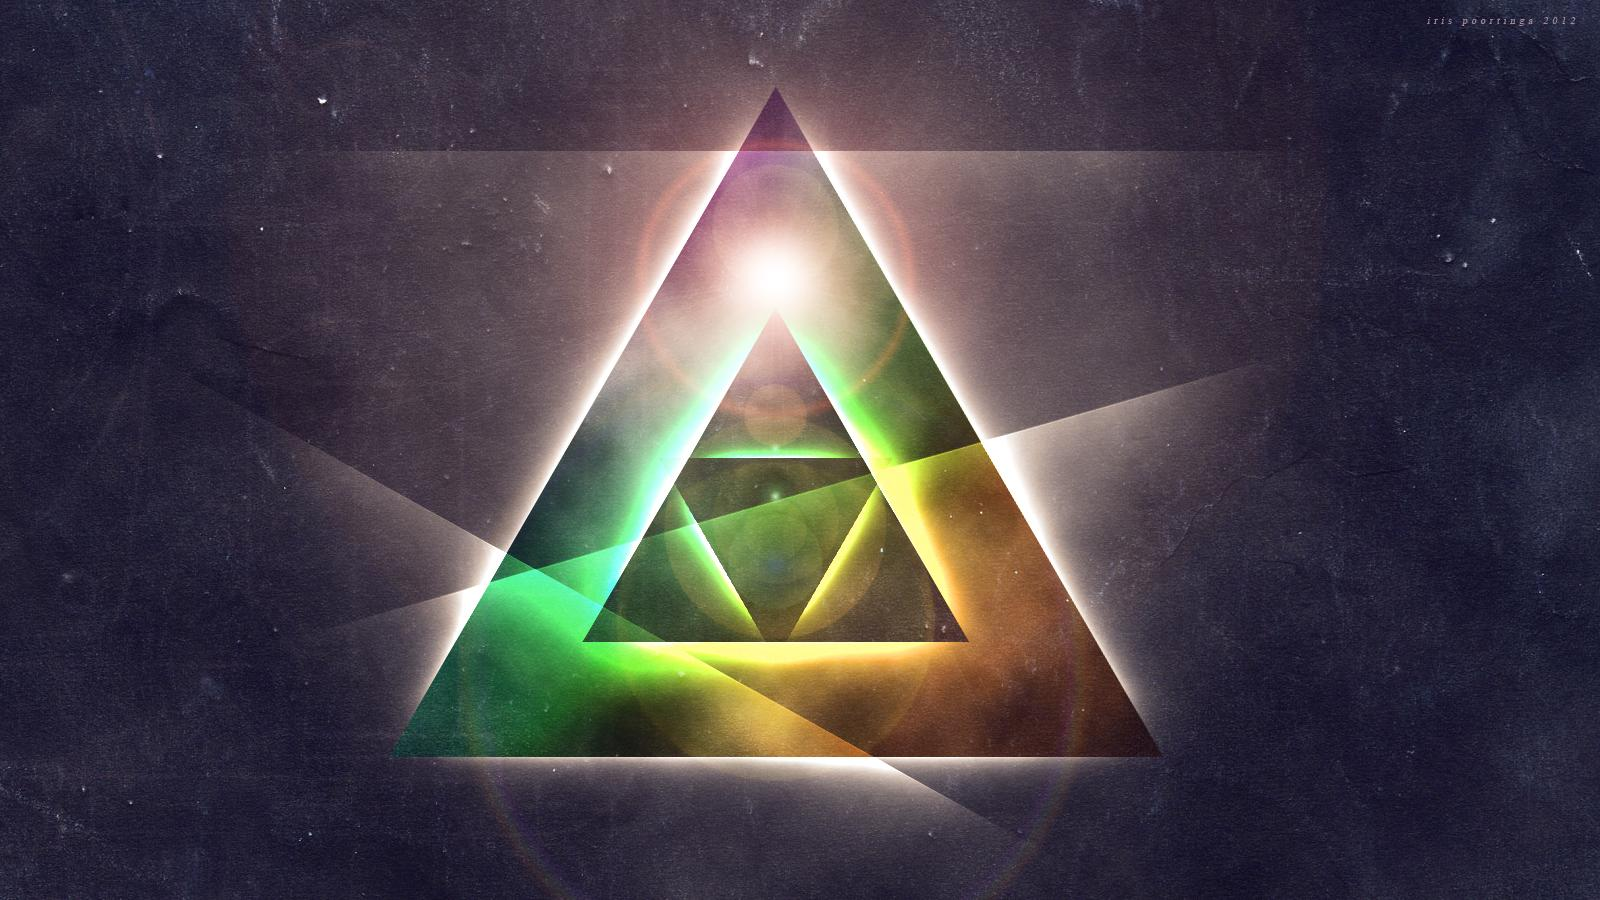 Triangle Galaxy wallpaper for iPhone via Cocopapa  Fonts 1600x900